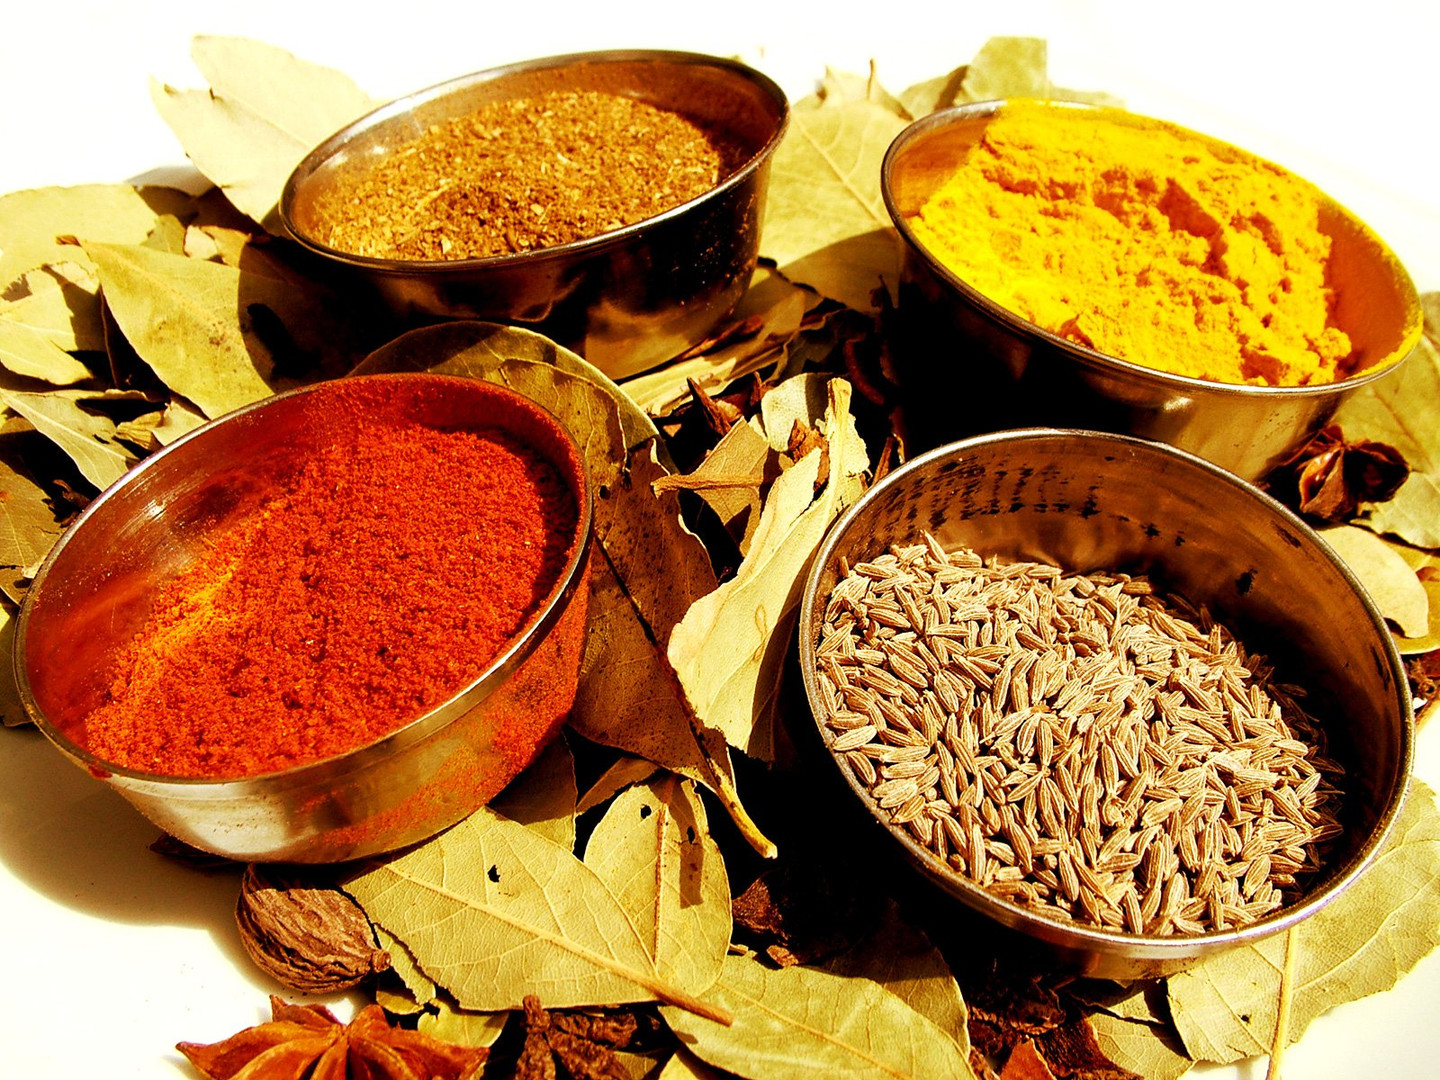 curry-spices-no1-1531460.jpg